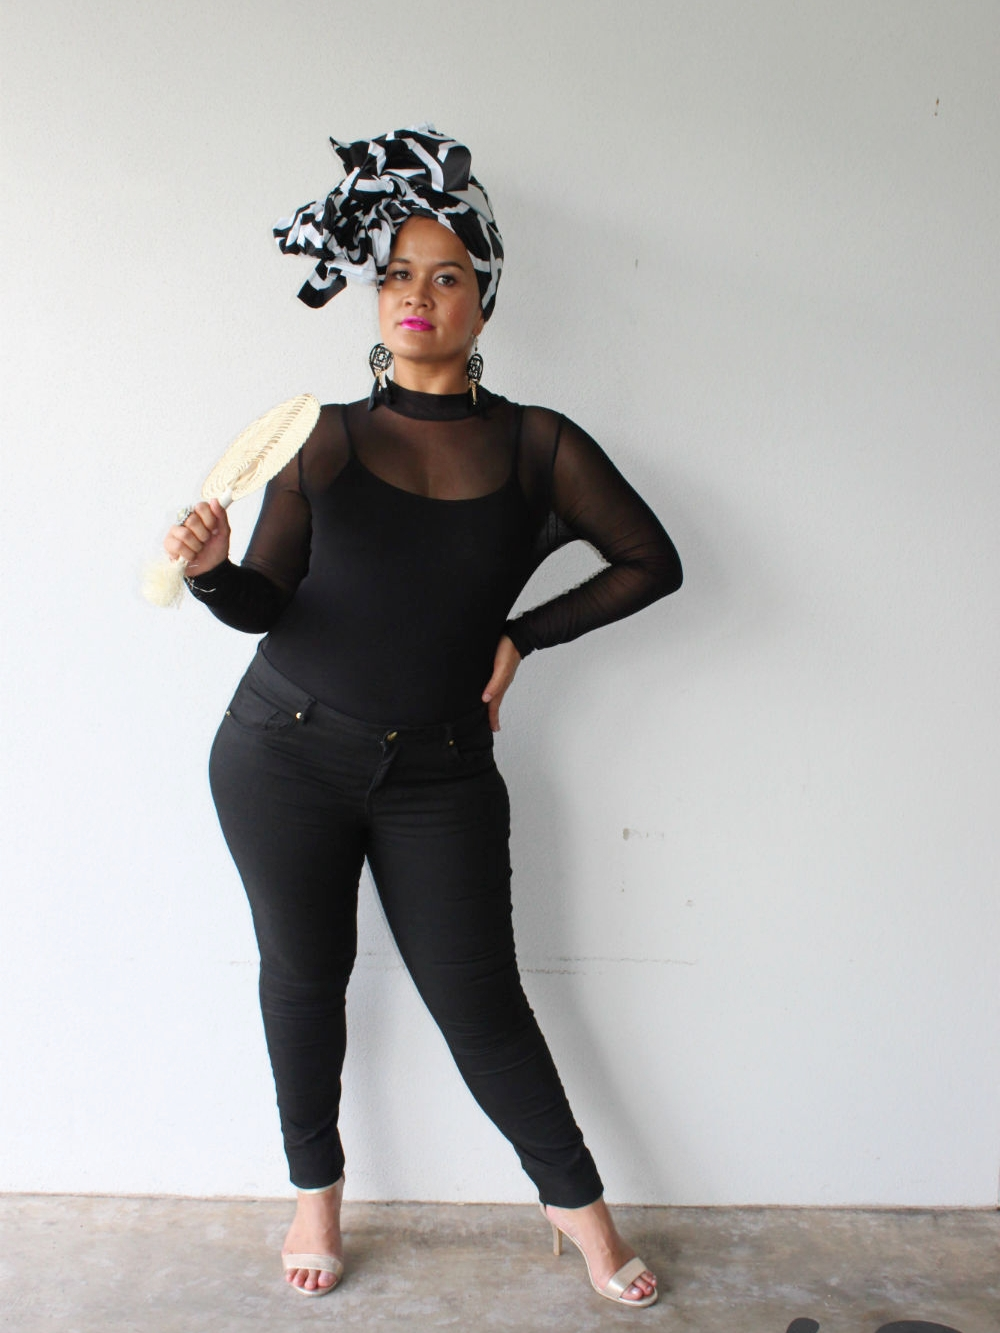 When Steph was given the mood board for our latest collection, she rummaged through her wardrobe and teamed HEADWRAP ZIG with this smart, casual outfit. The transparent bodysuit was the ideal touch to complete this look.